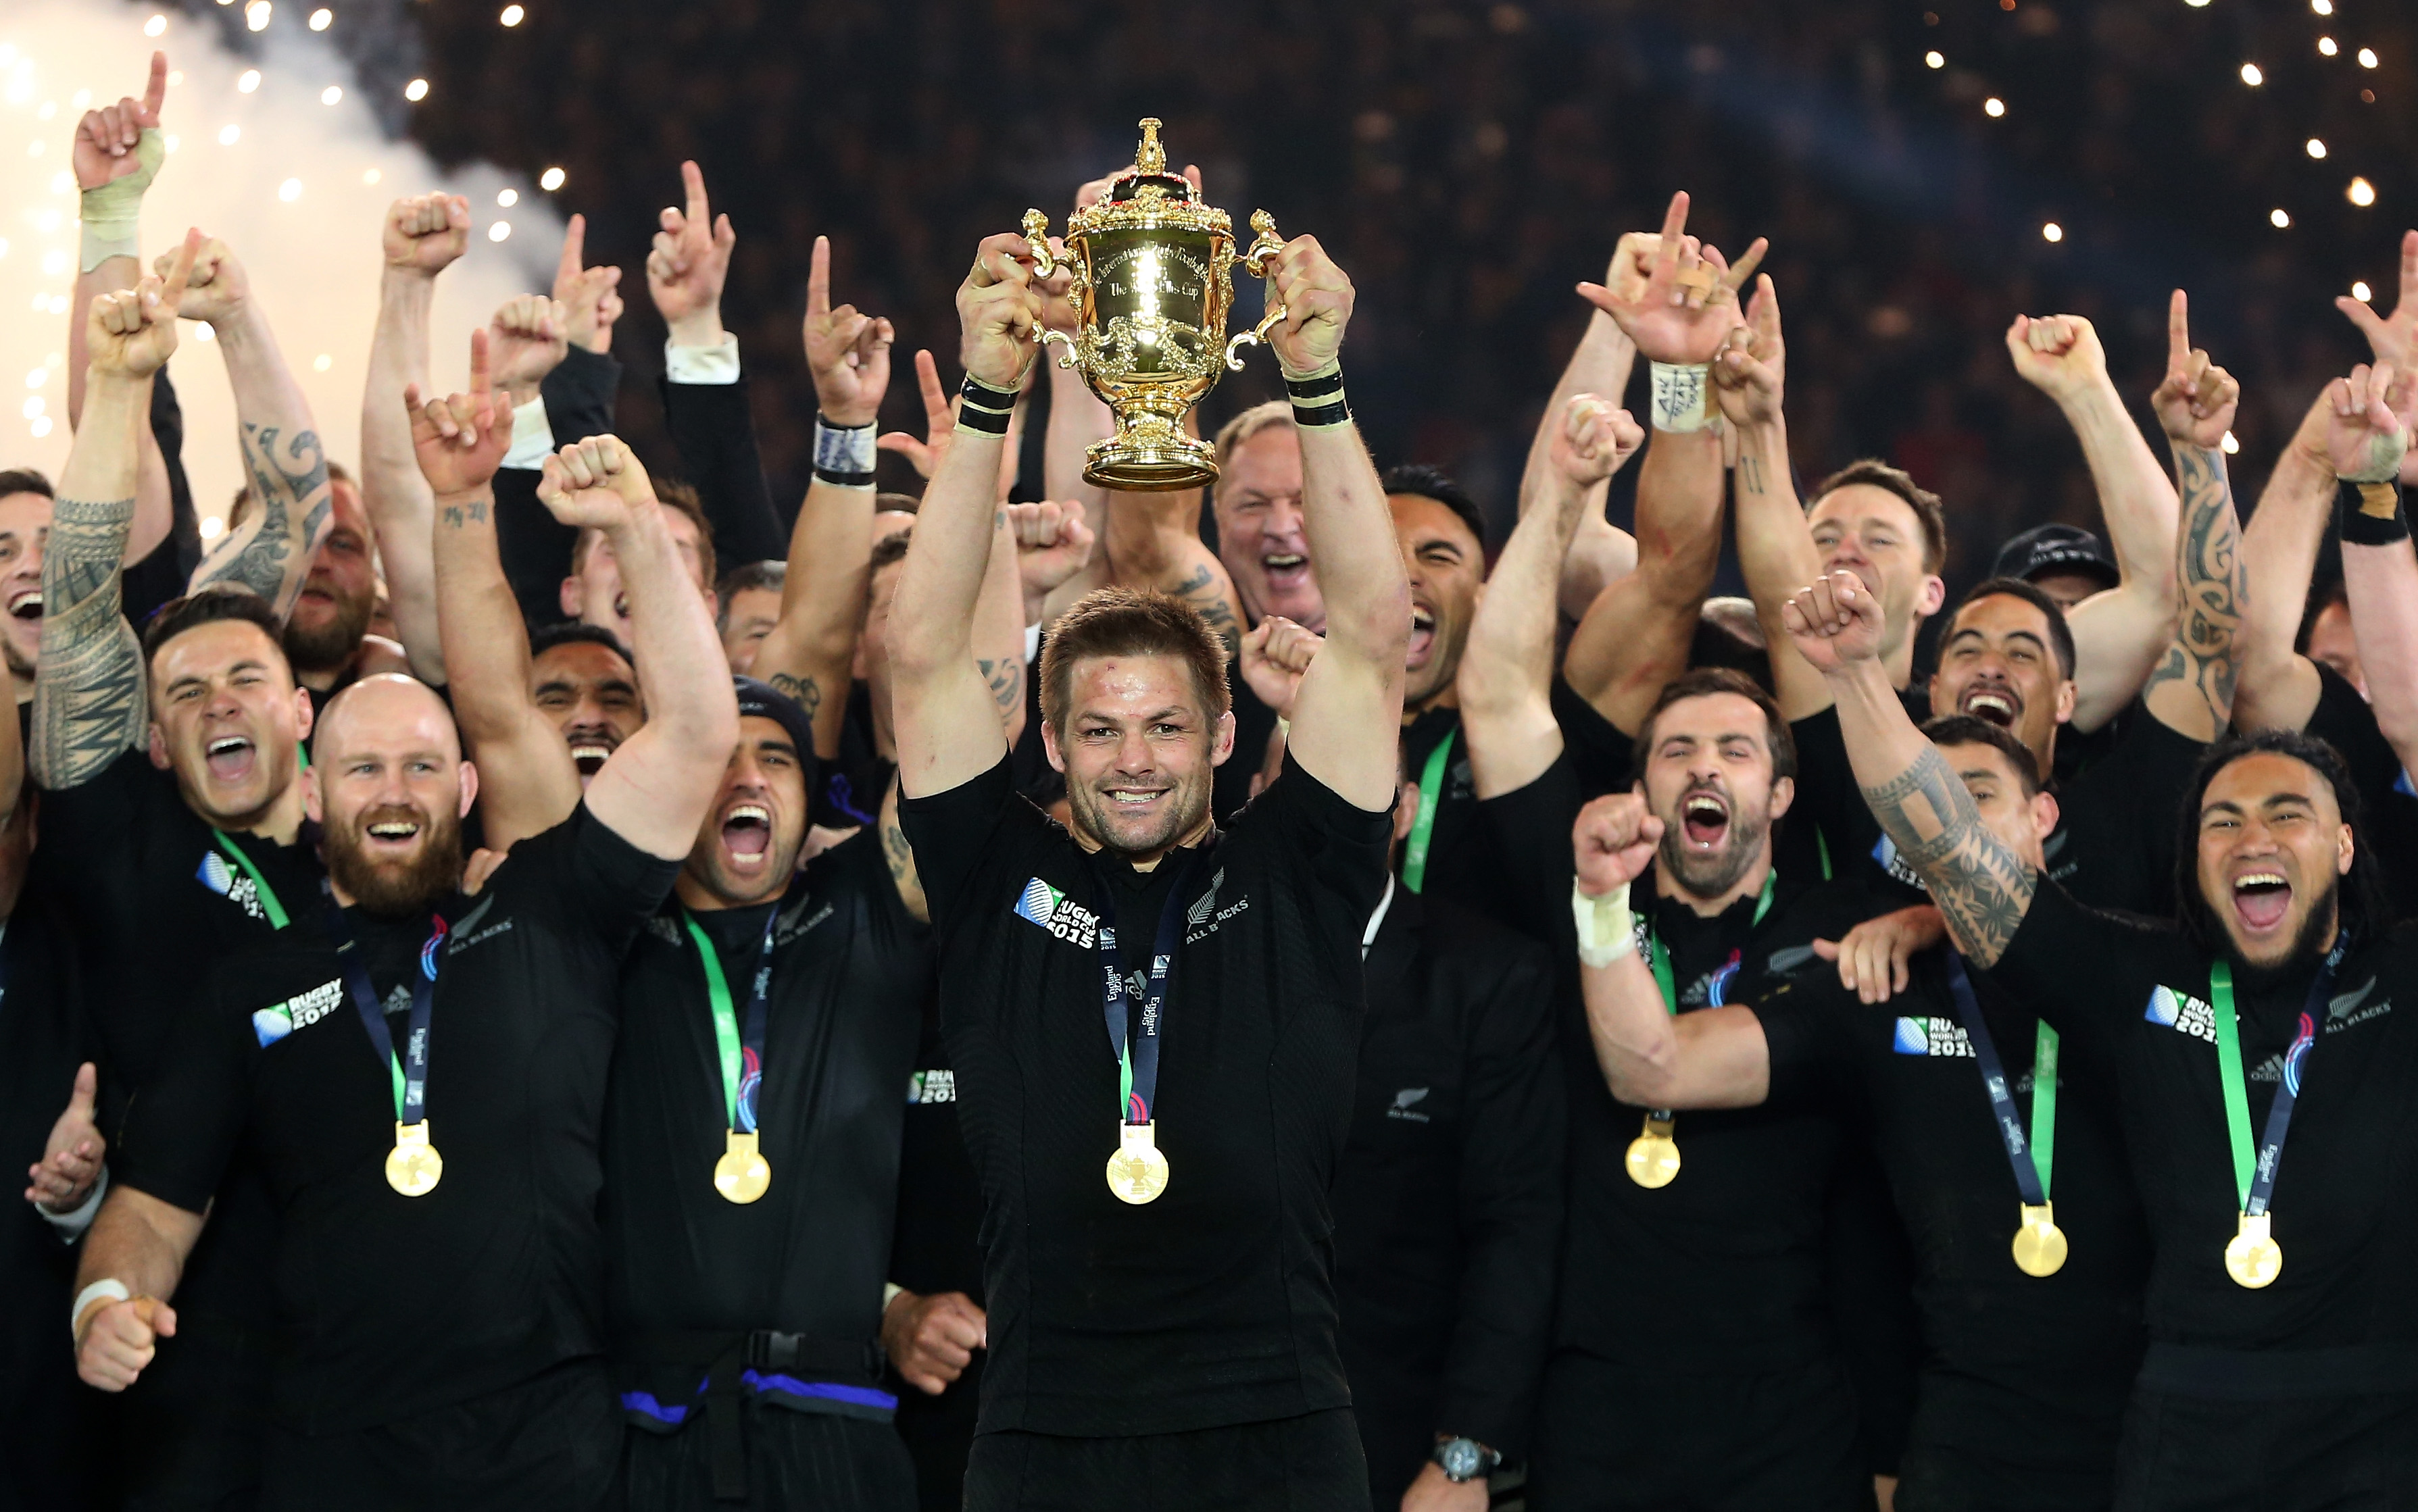 All Blacks win Rugby World Cup 2015